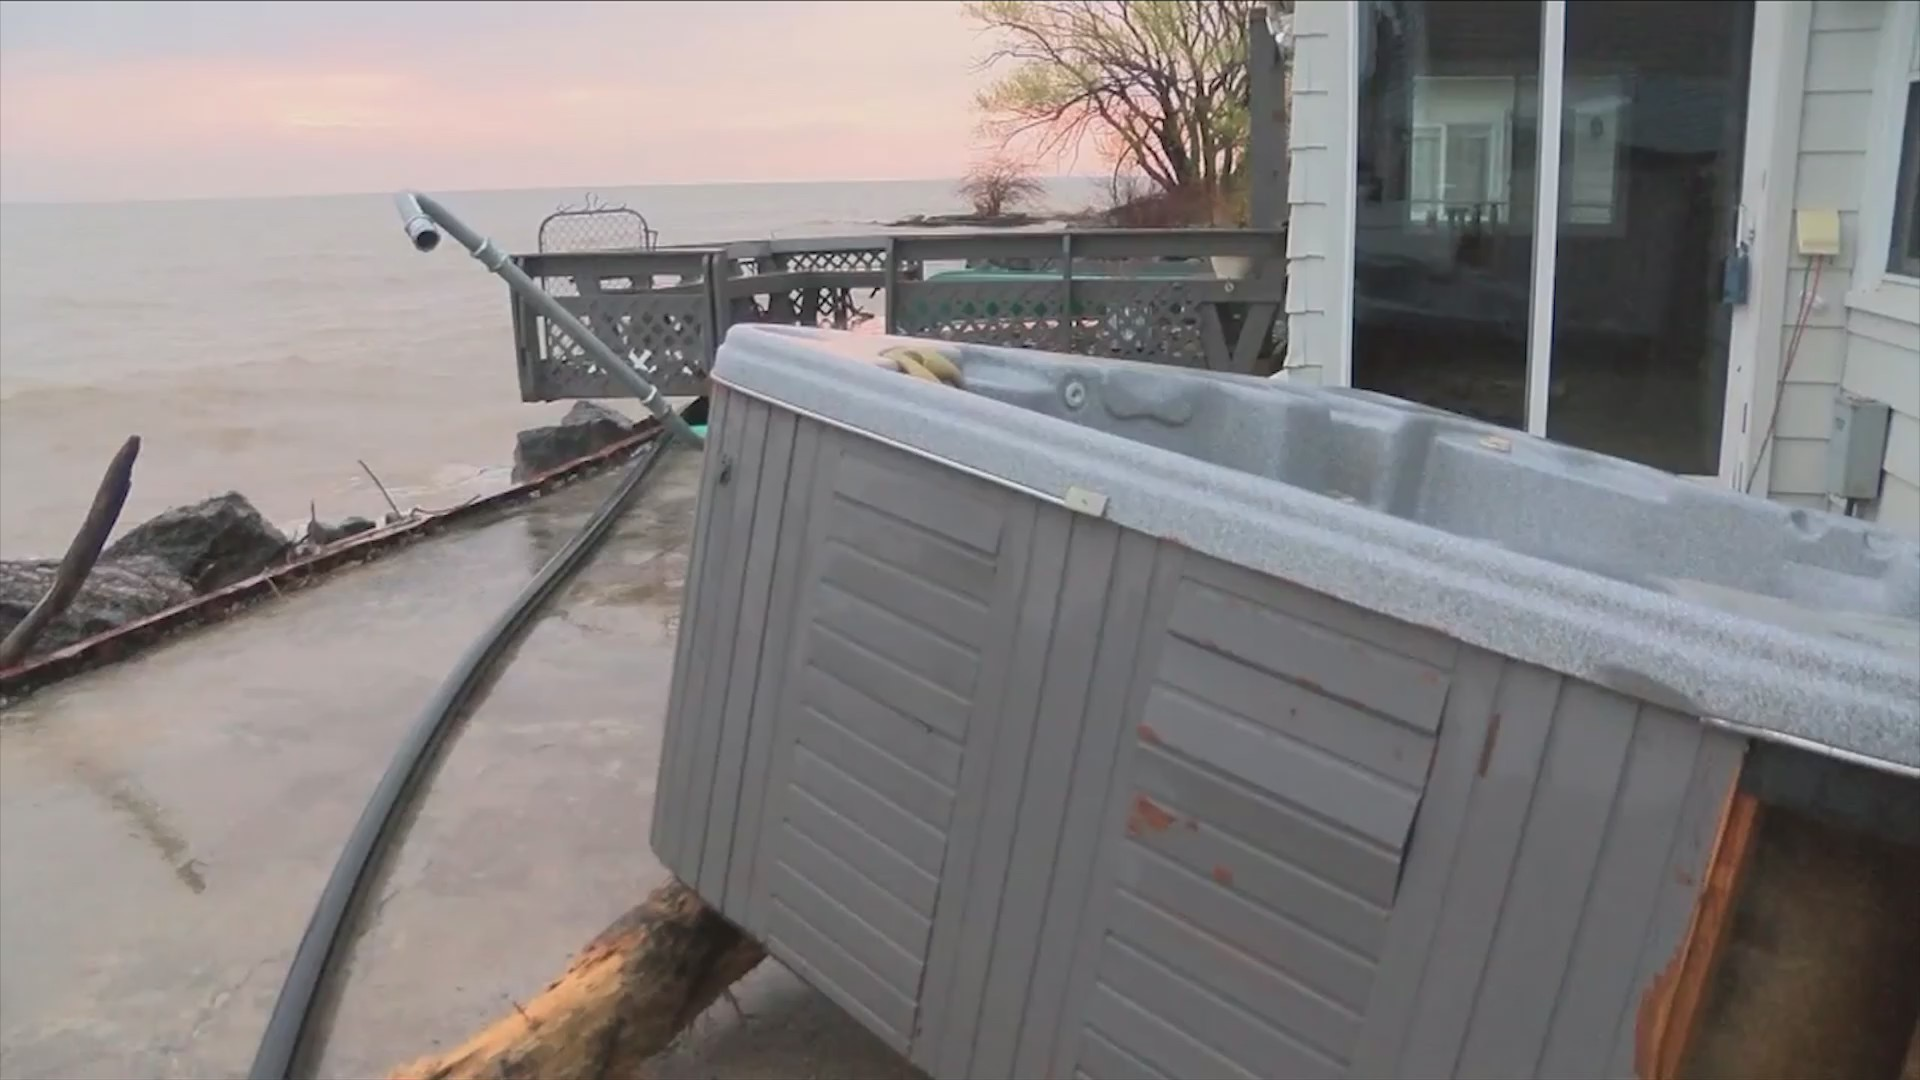 Lake levels already above normal, supervisors say let water out